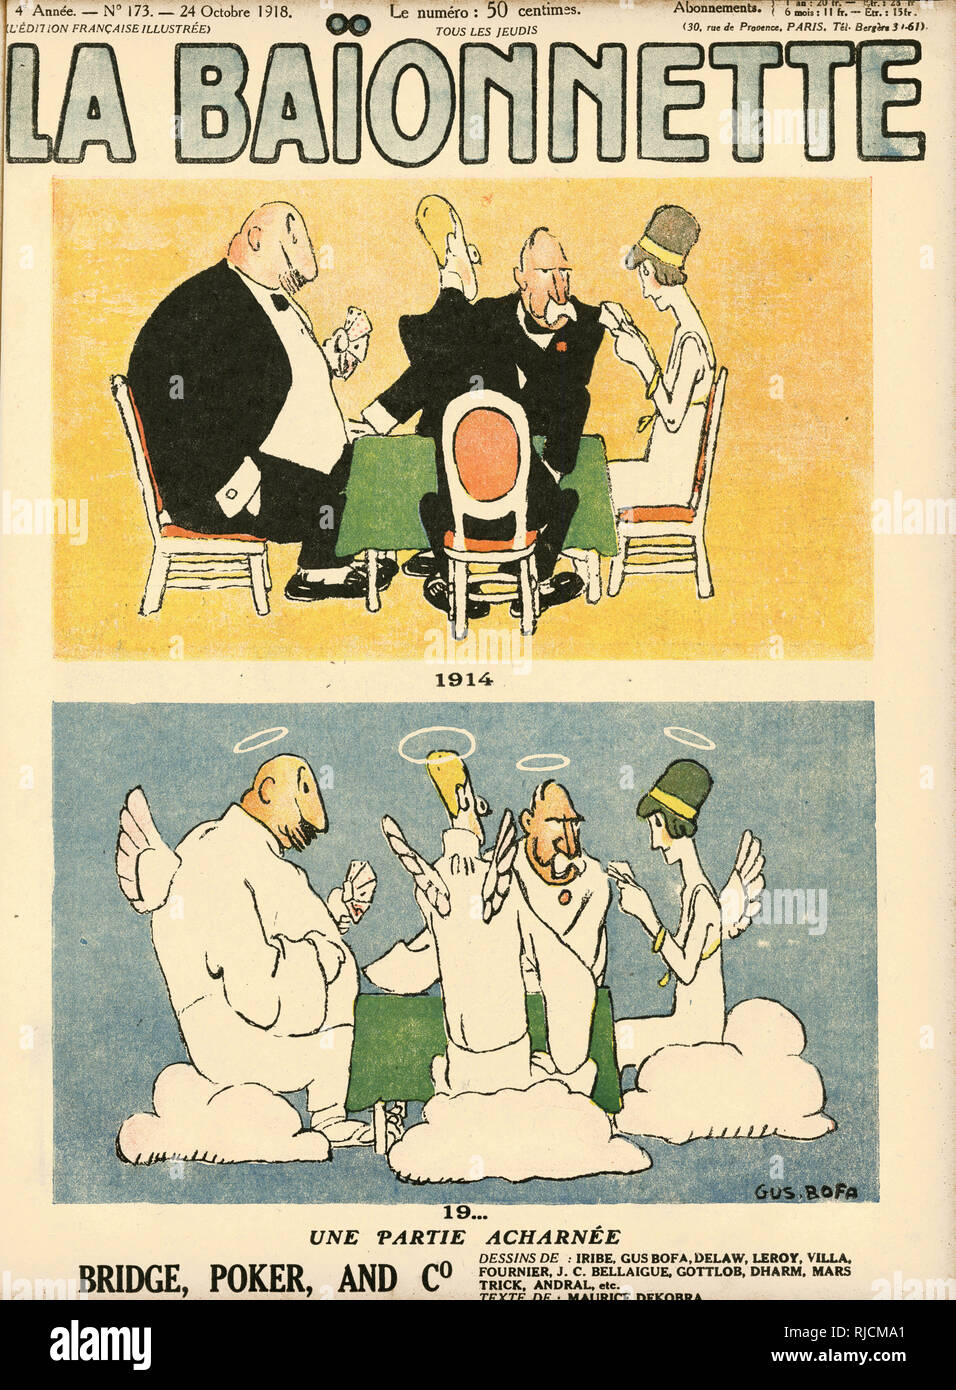 Front cover design for La Baionnette, 1914, 19.., A Tough Call.  Bridge, Poker and Co. Life continues in heaven. - Stock Image